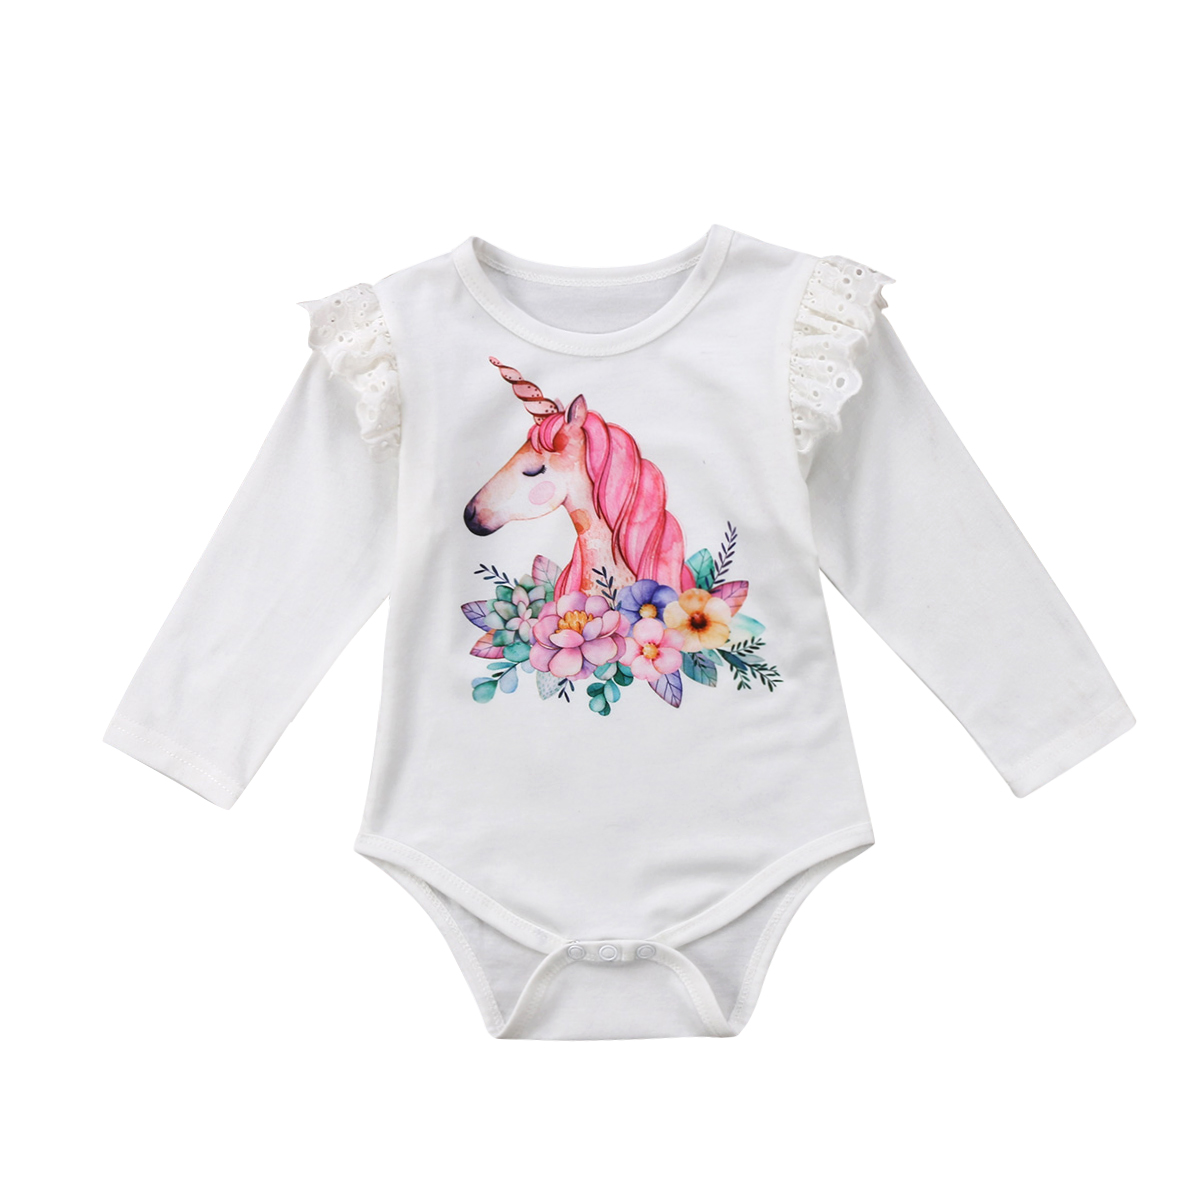 Baby Clothes Toddler Baby...